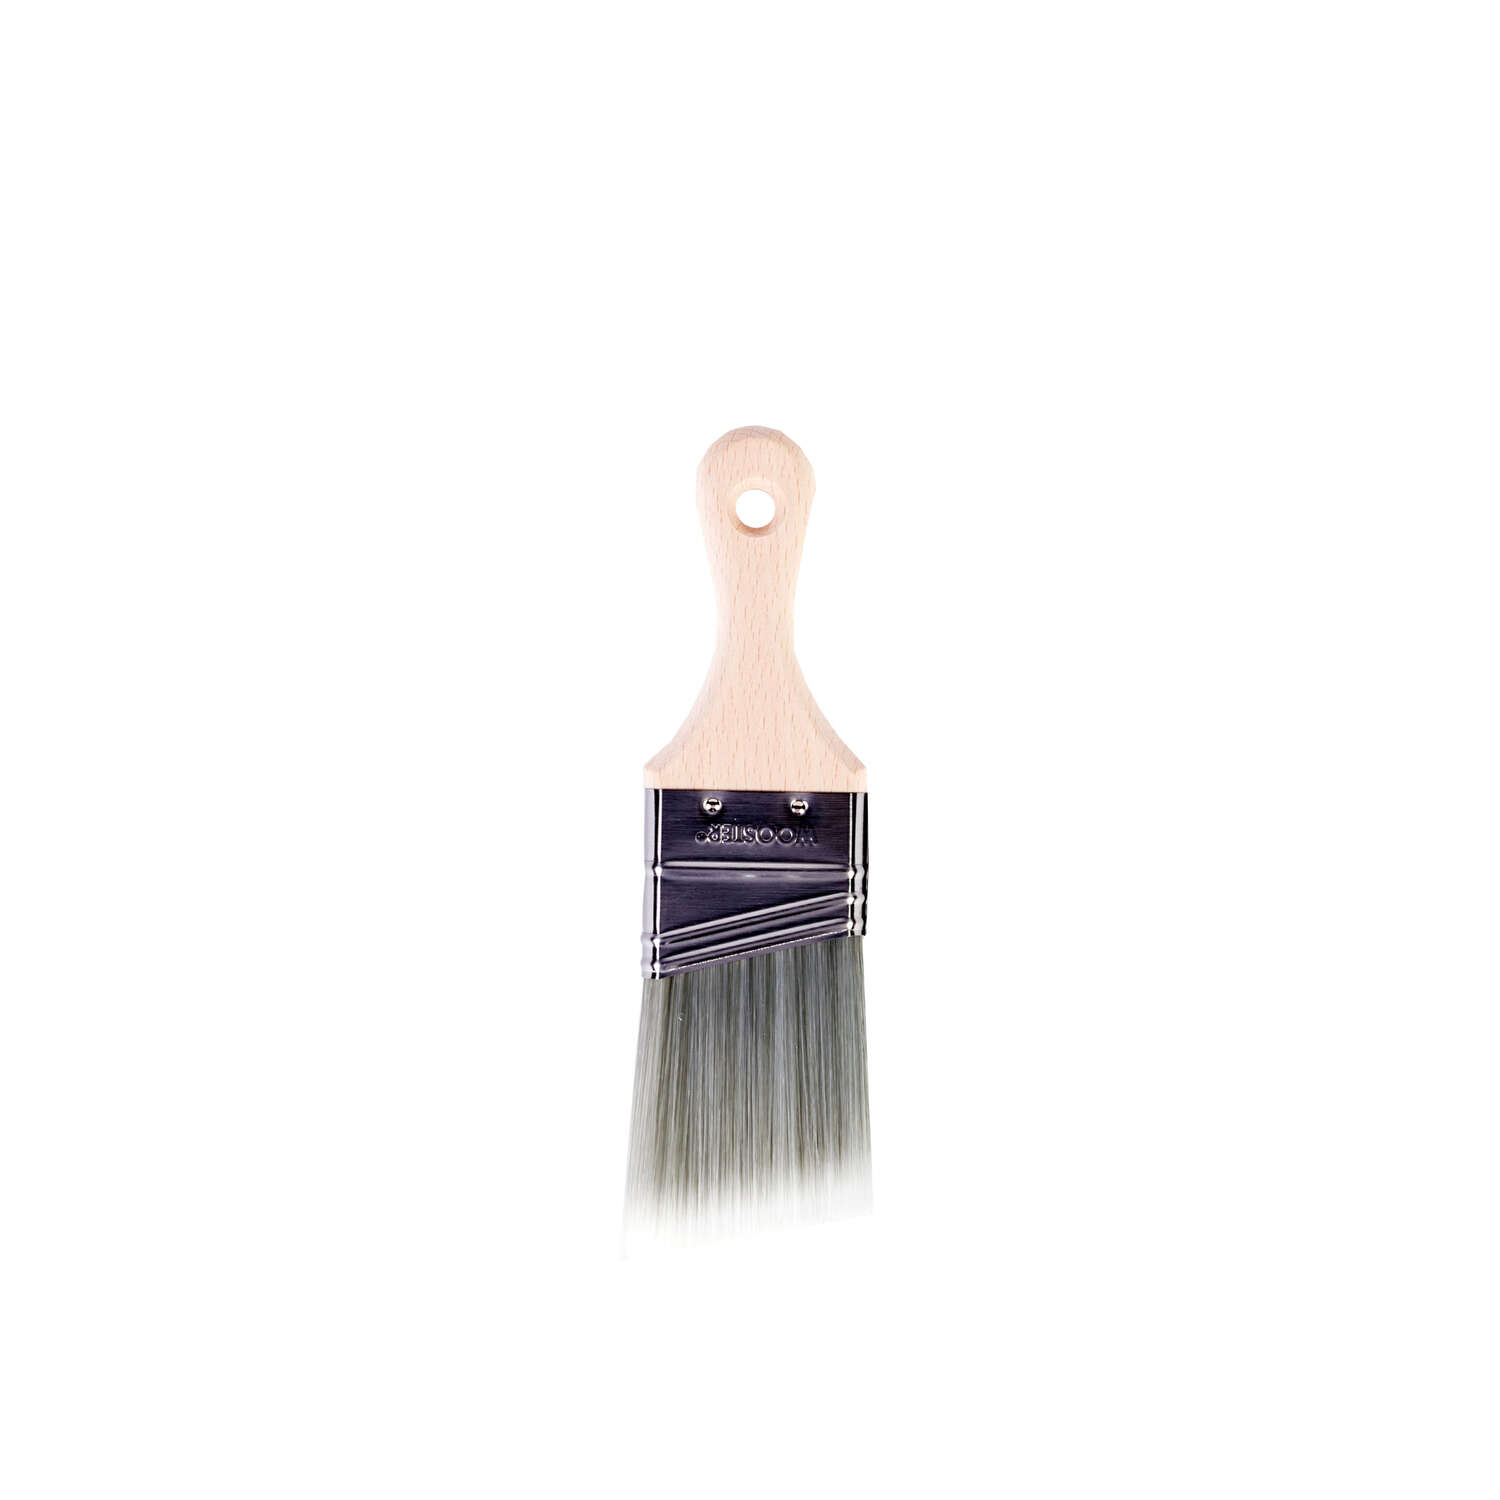 Wooster  Silver Tip  Angle  2 in. W Paint Brush  Polyester Blend